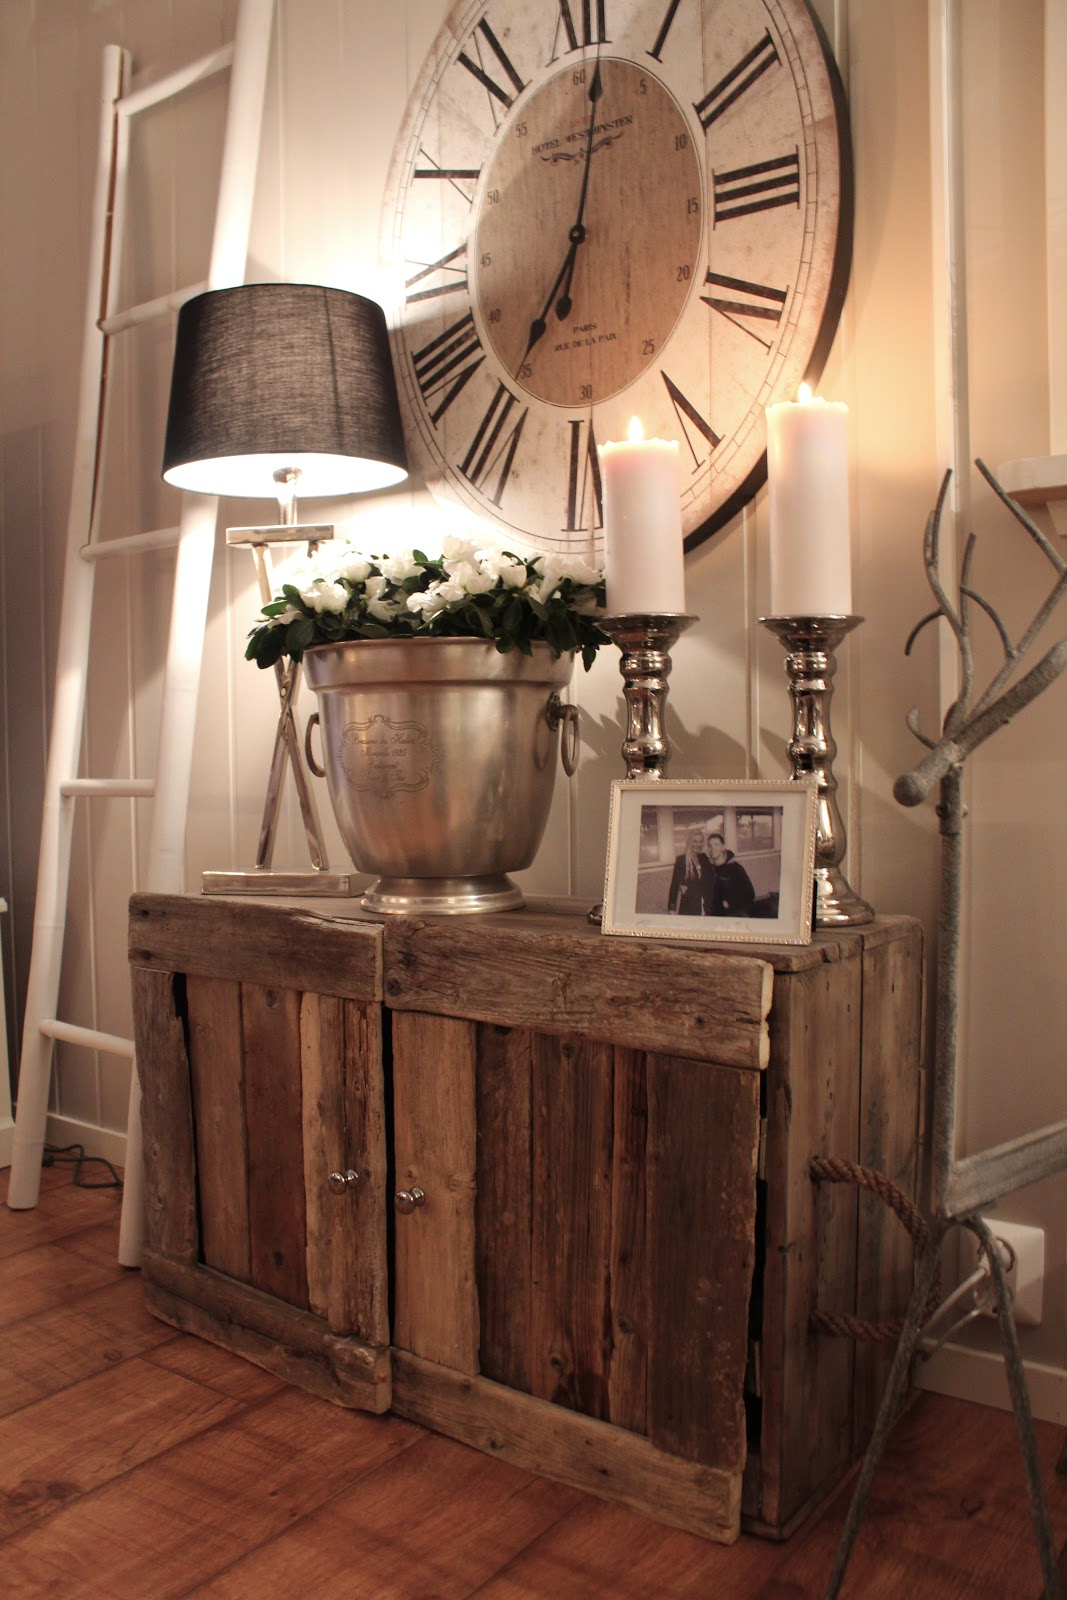 1. Mix Metal Textures With Reclaimed Wood